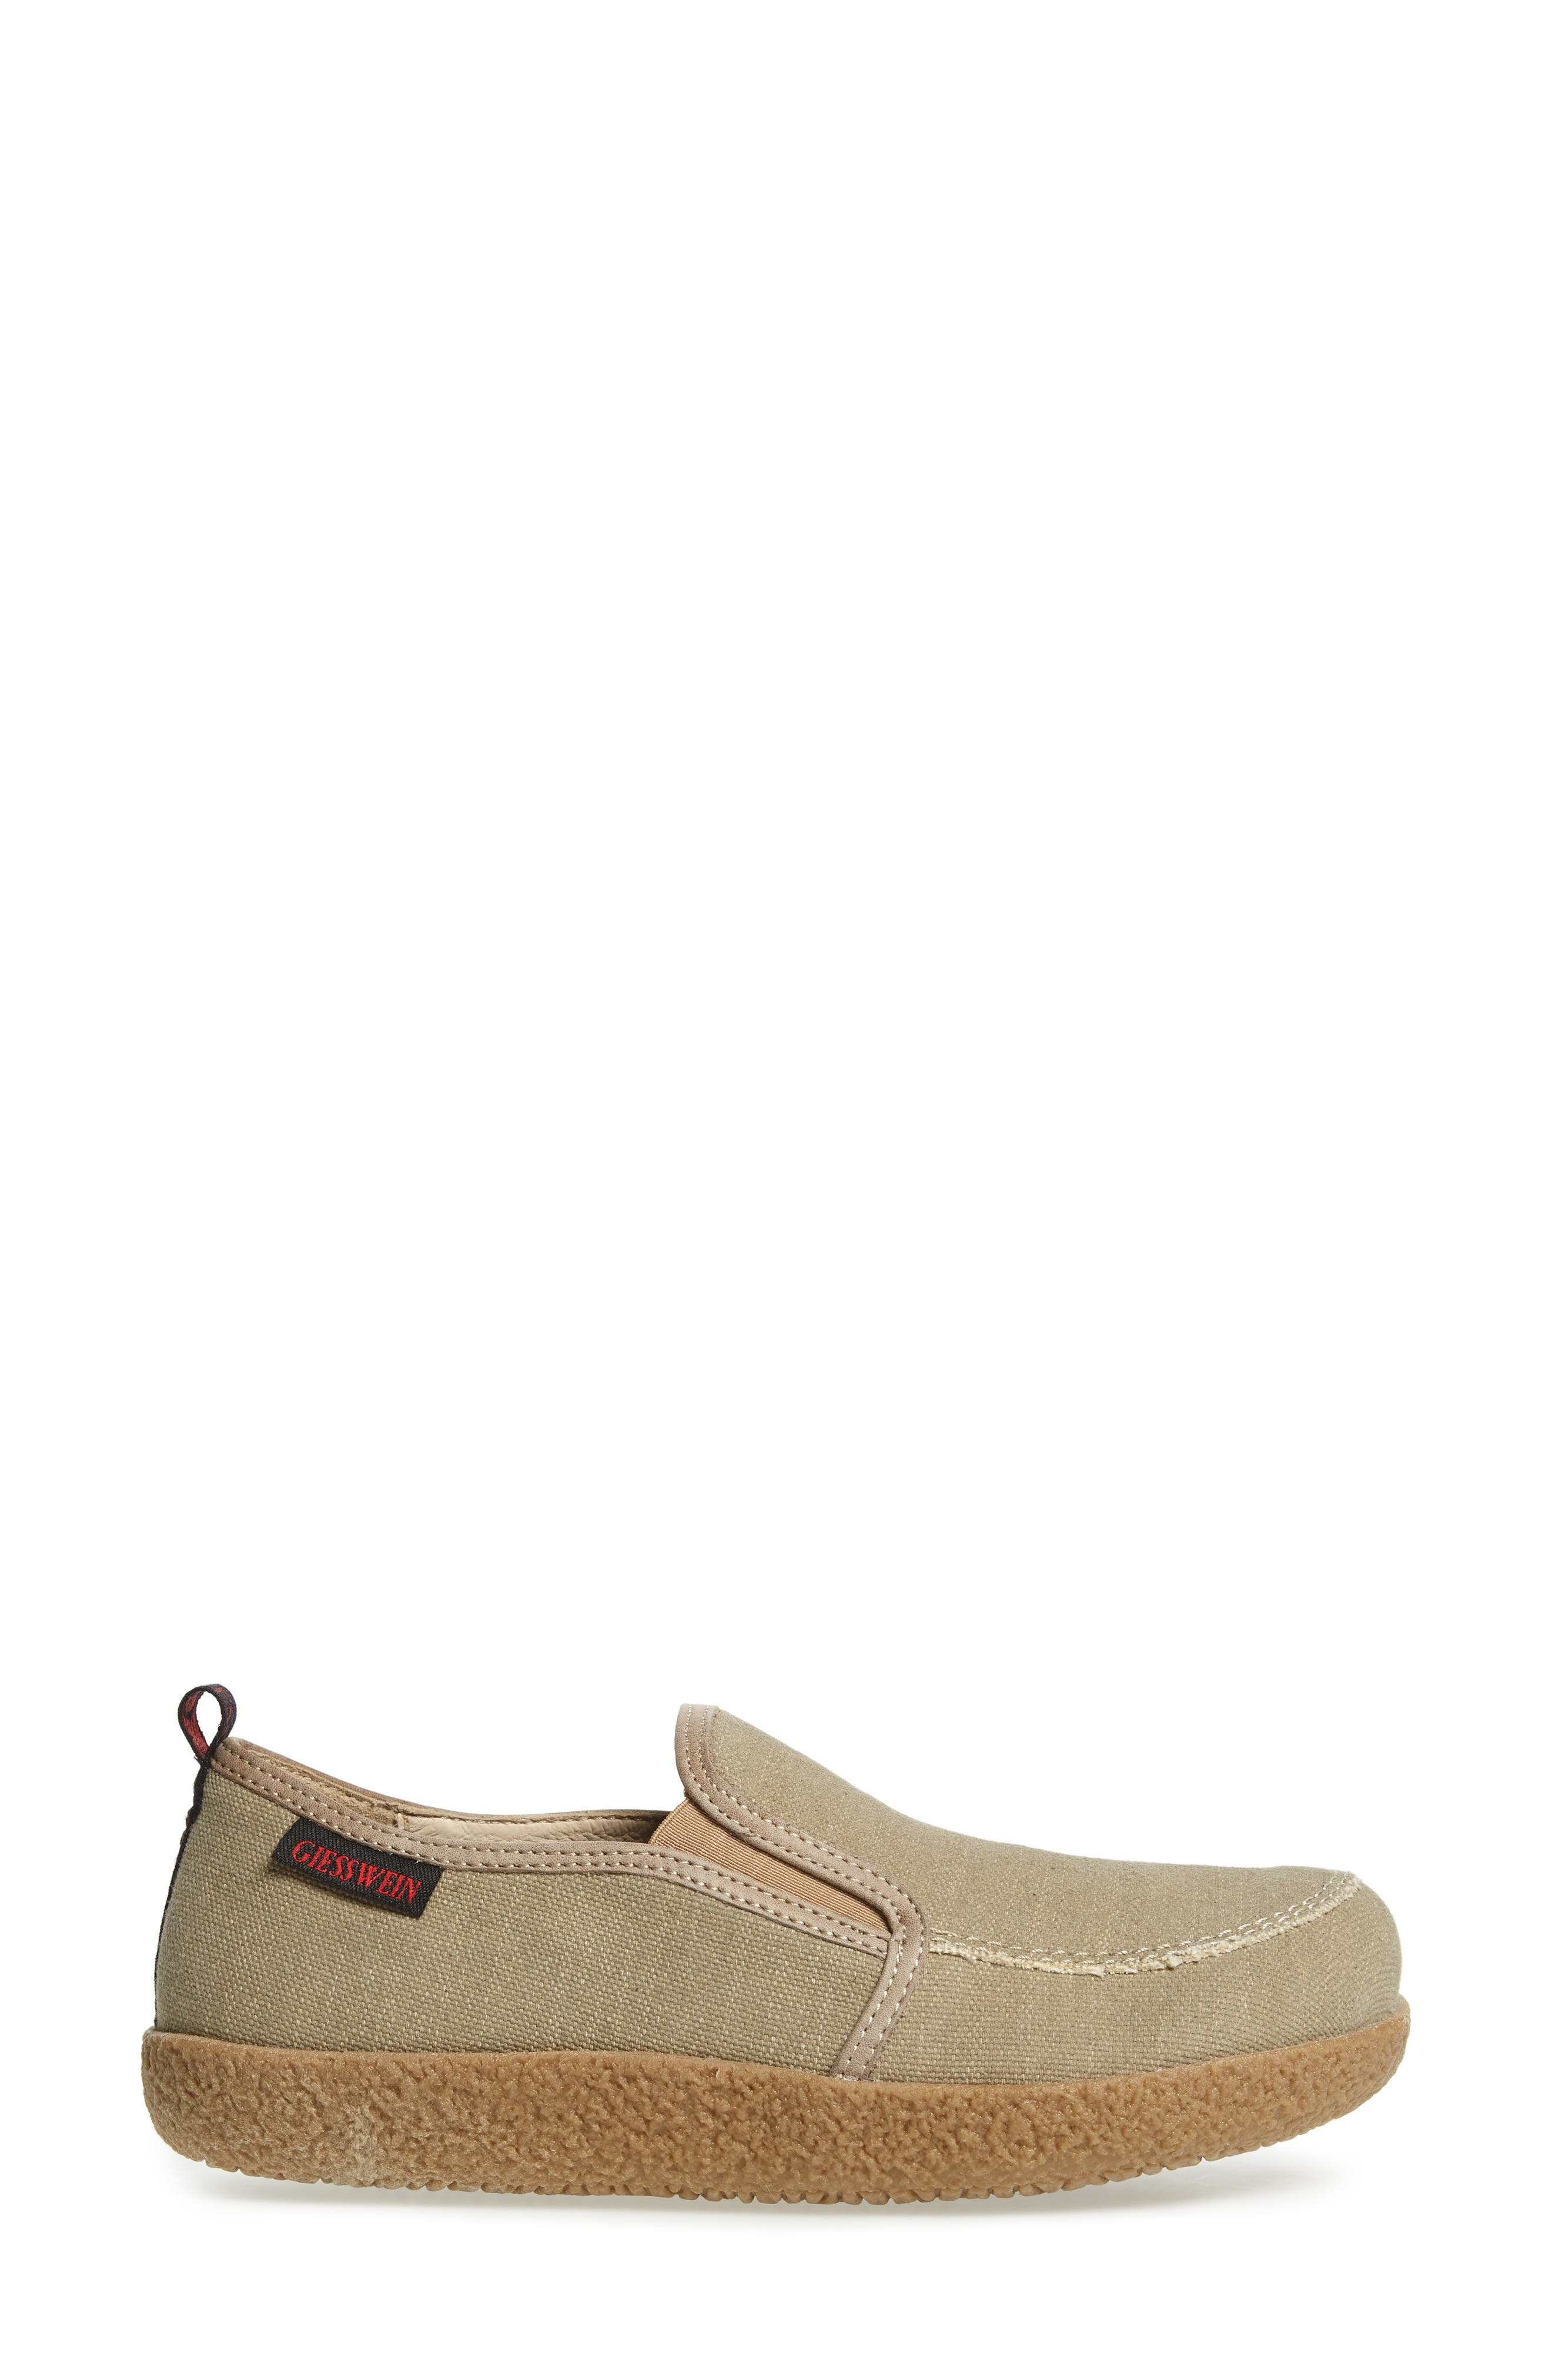 Reith Loafer,                             Alternate thumbnail 3, color,                             250